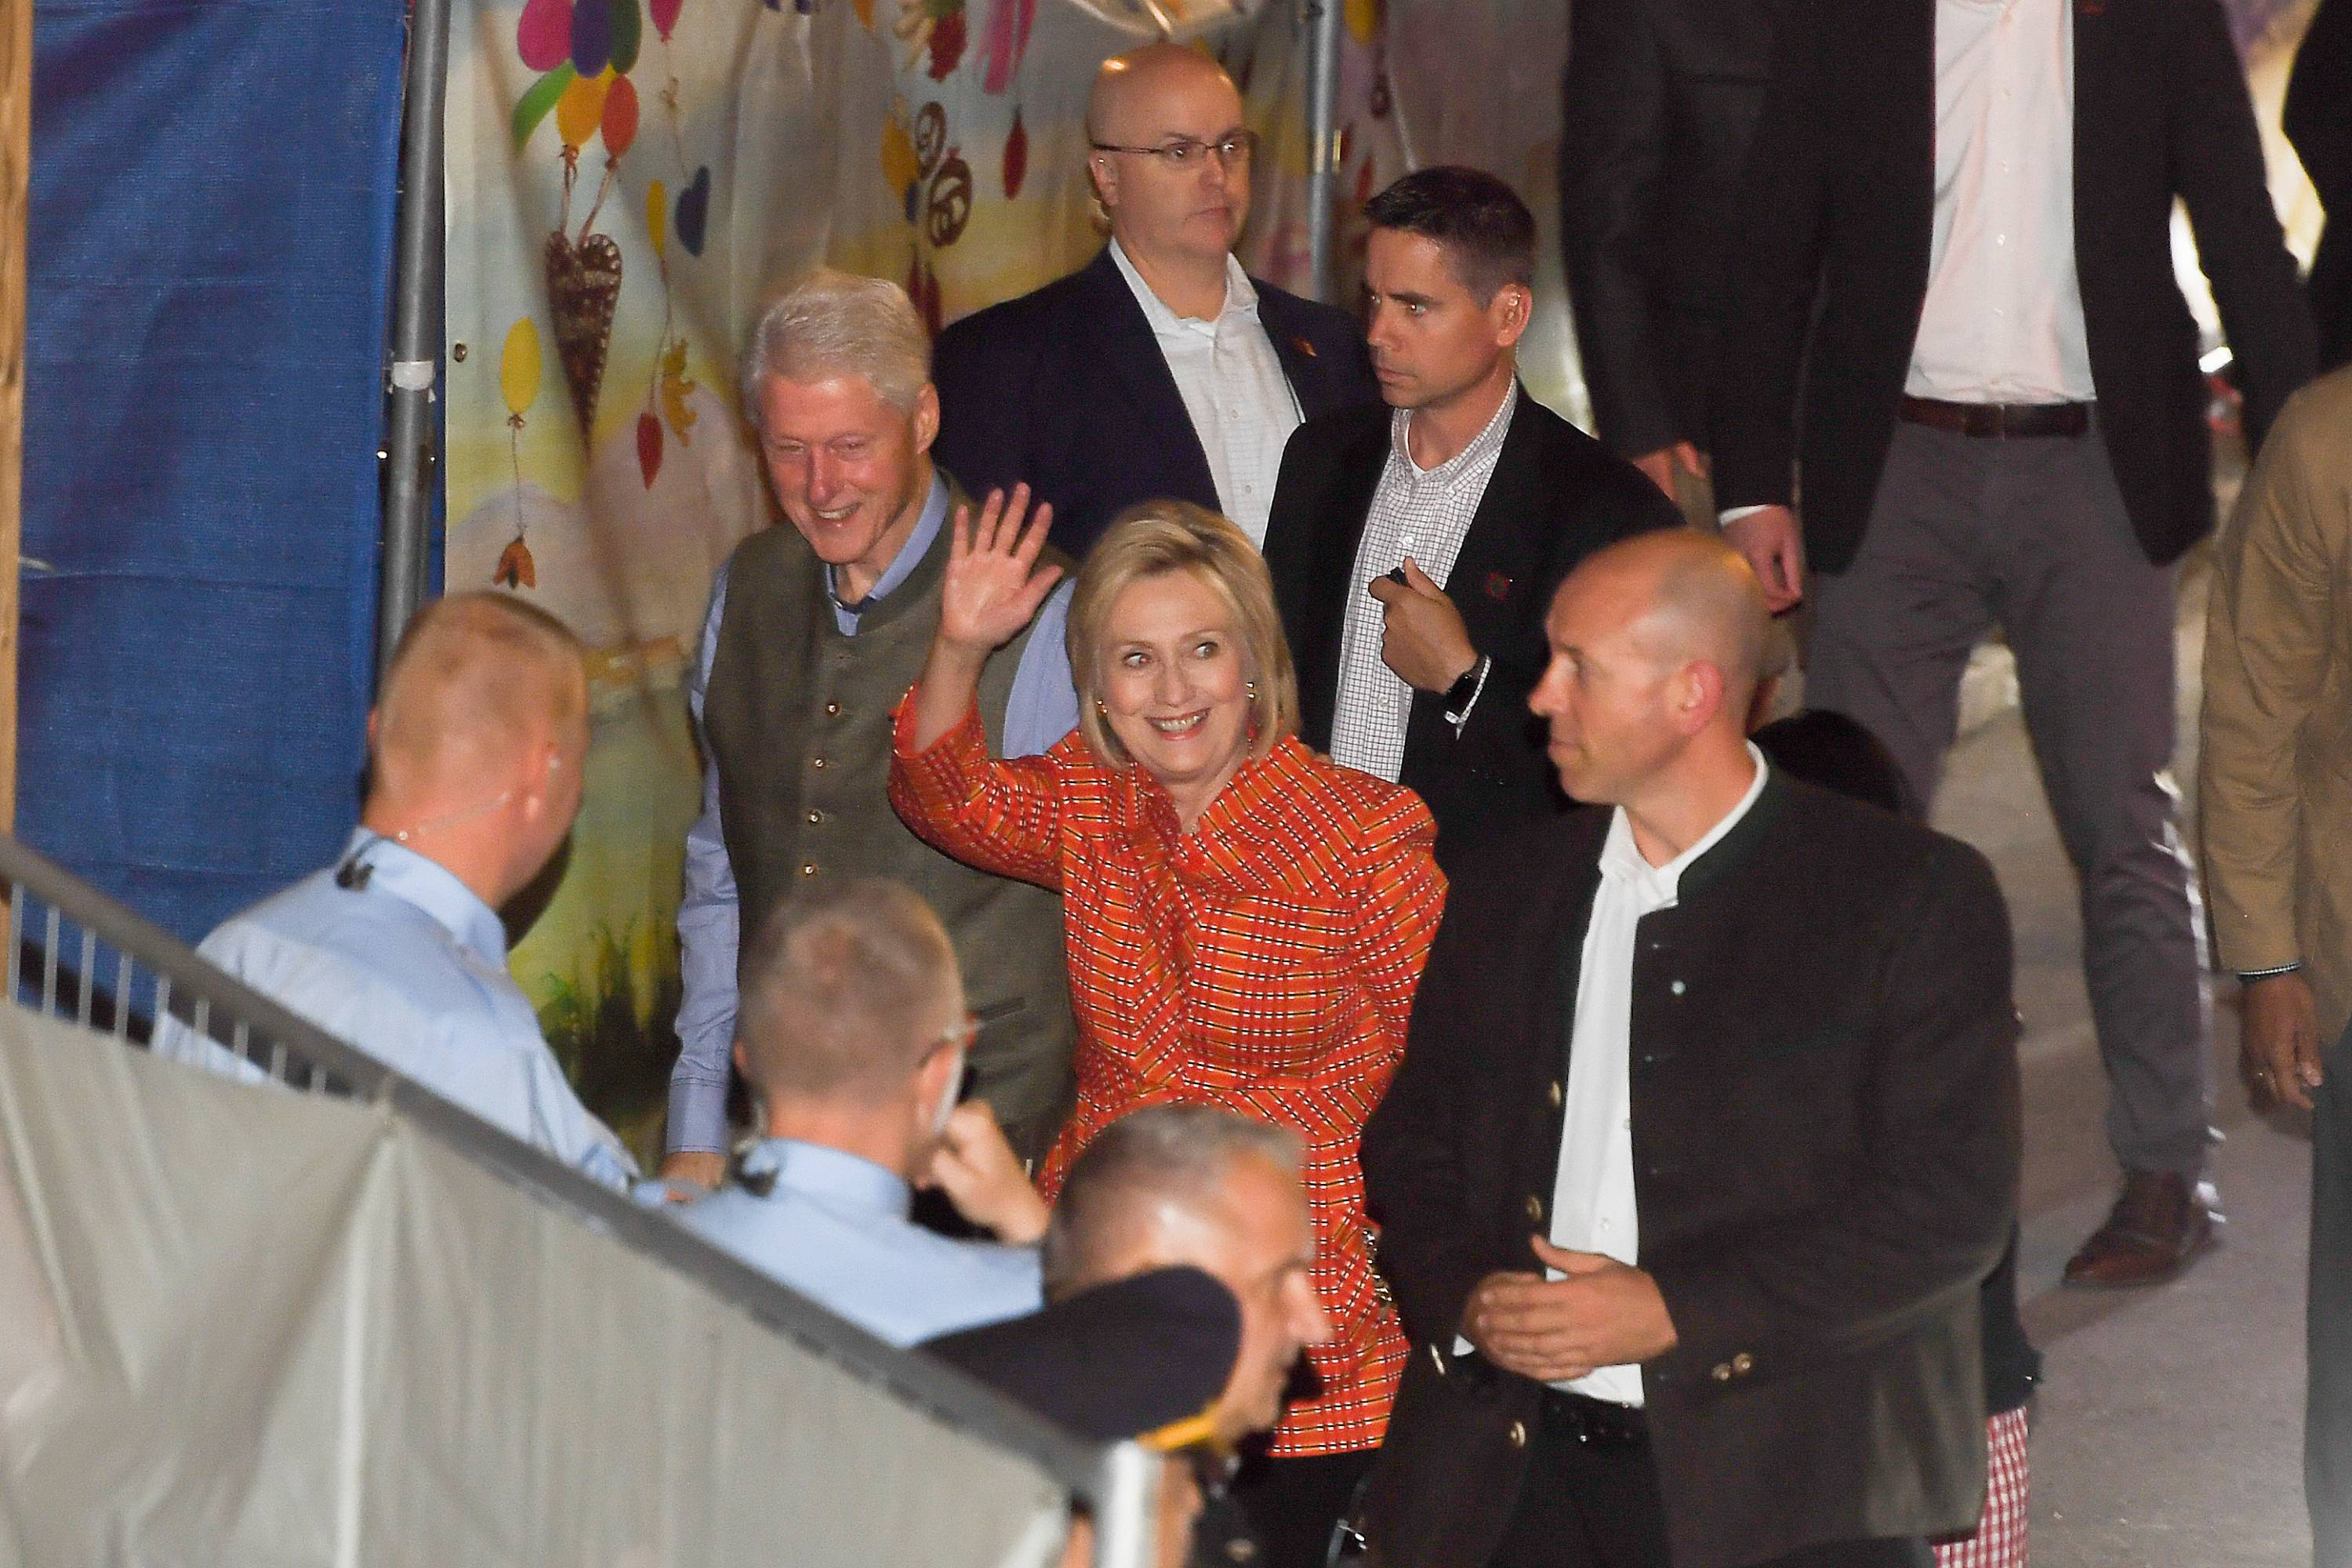 Oktoberfest 2018 - Bill and Hillary Clinton